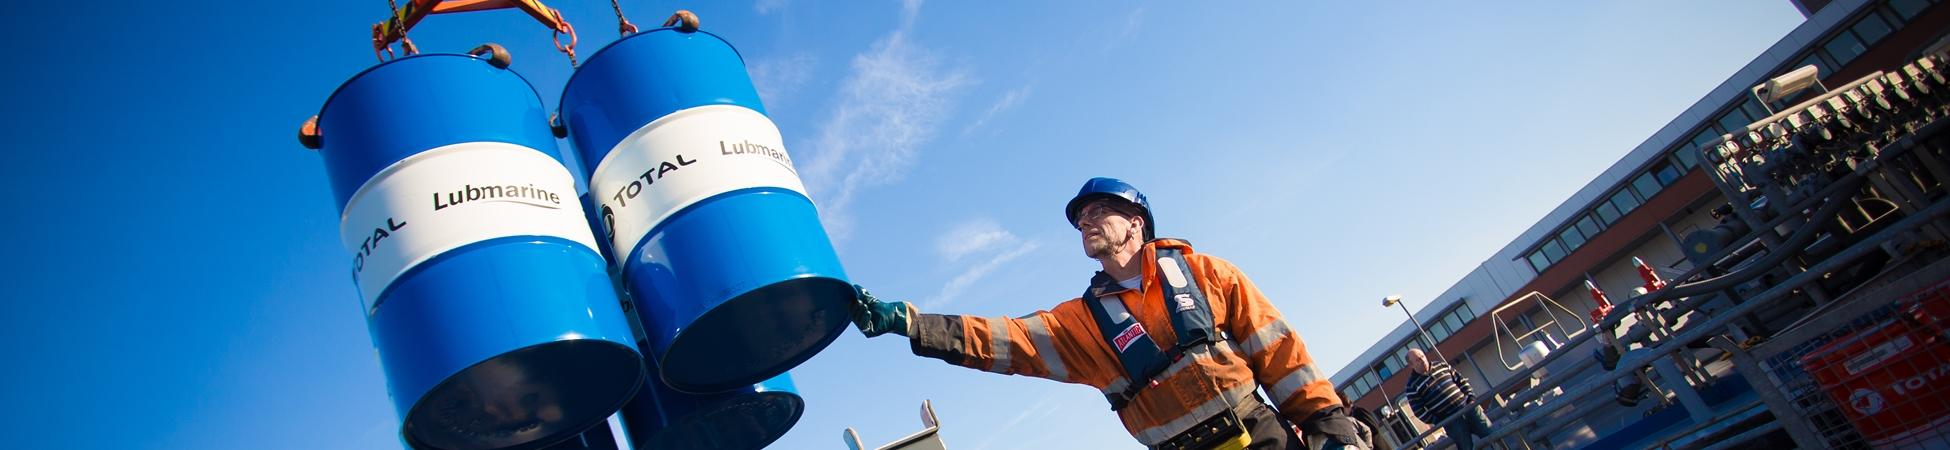 TOTAL LUBMARINE DELIVERING PIONEERING LUBRICANTS AND SERVICES TO THE SHIPPING INDUSTRY